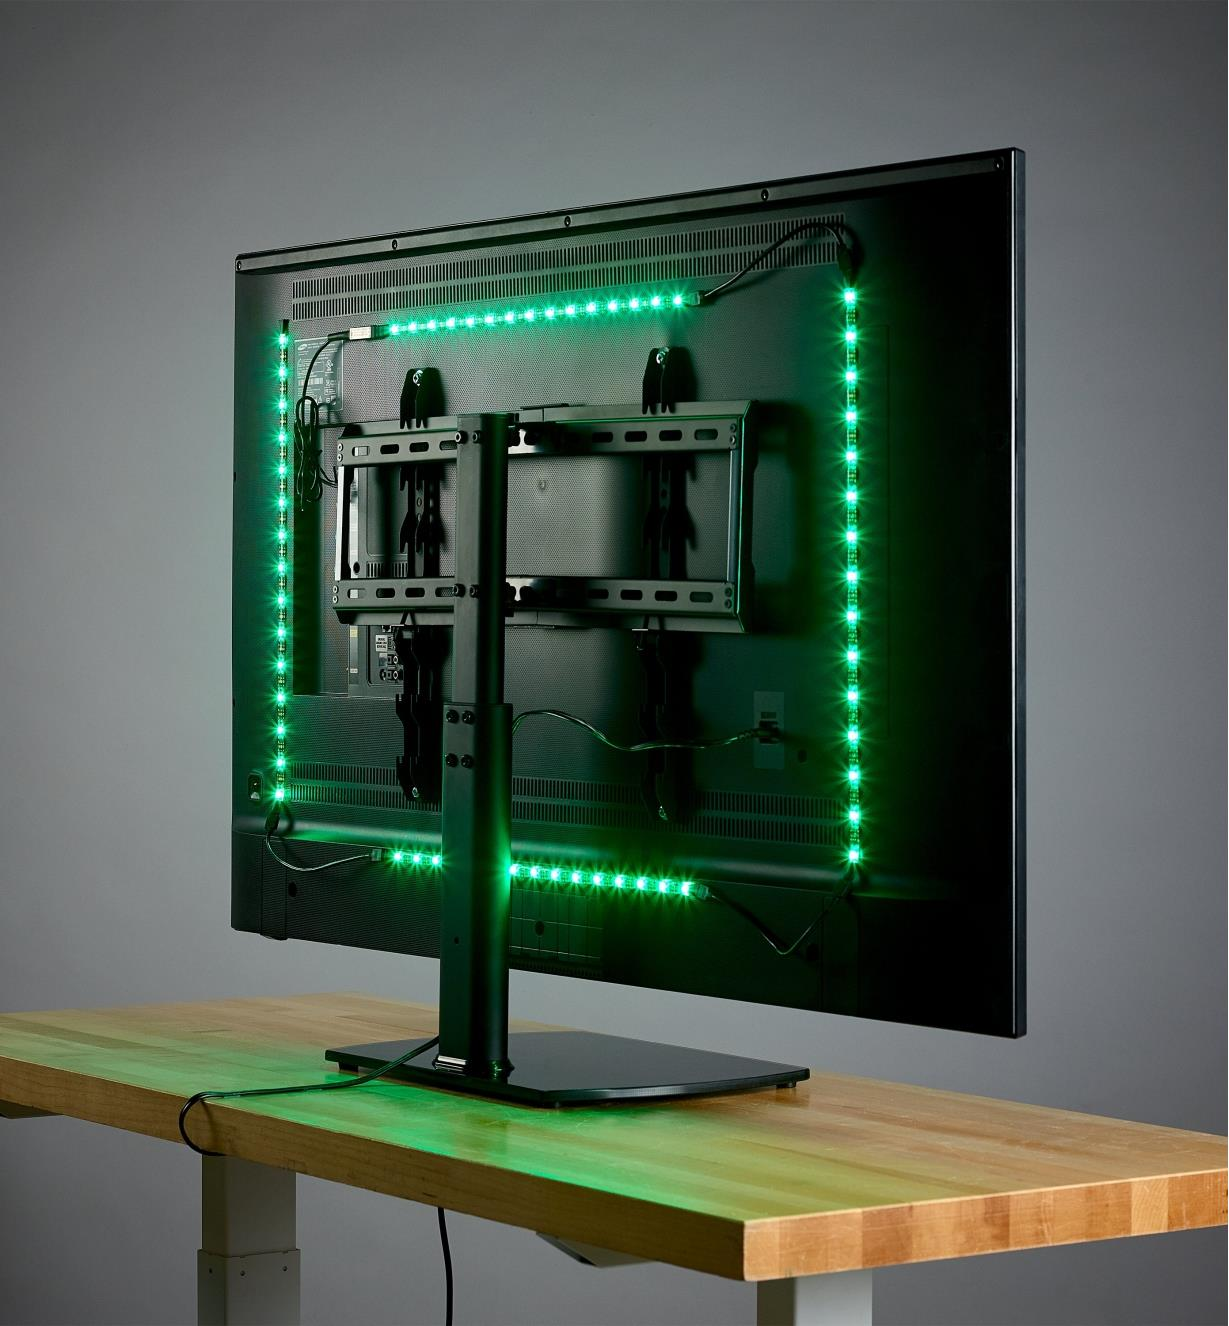 A USB LED tape light kit shown mounted on the back of a computer monitor